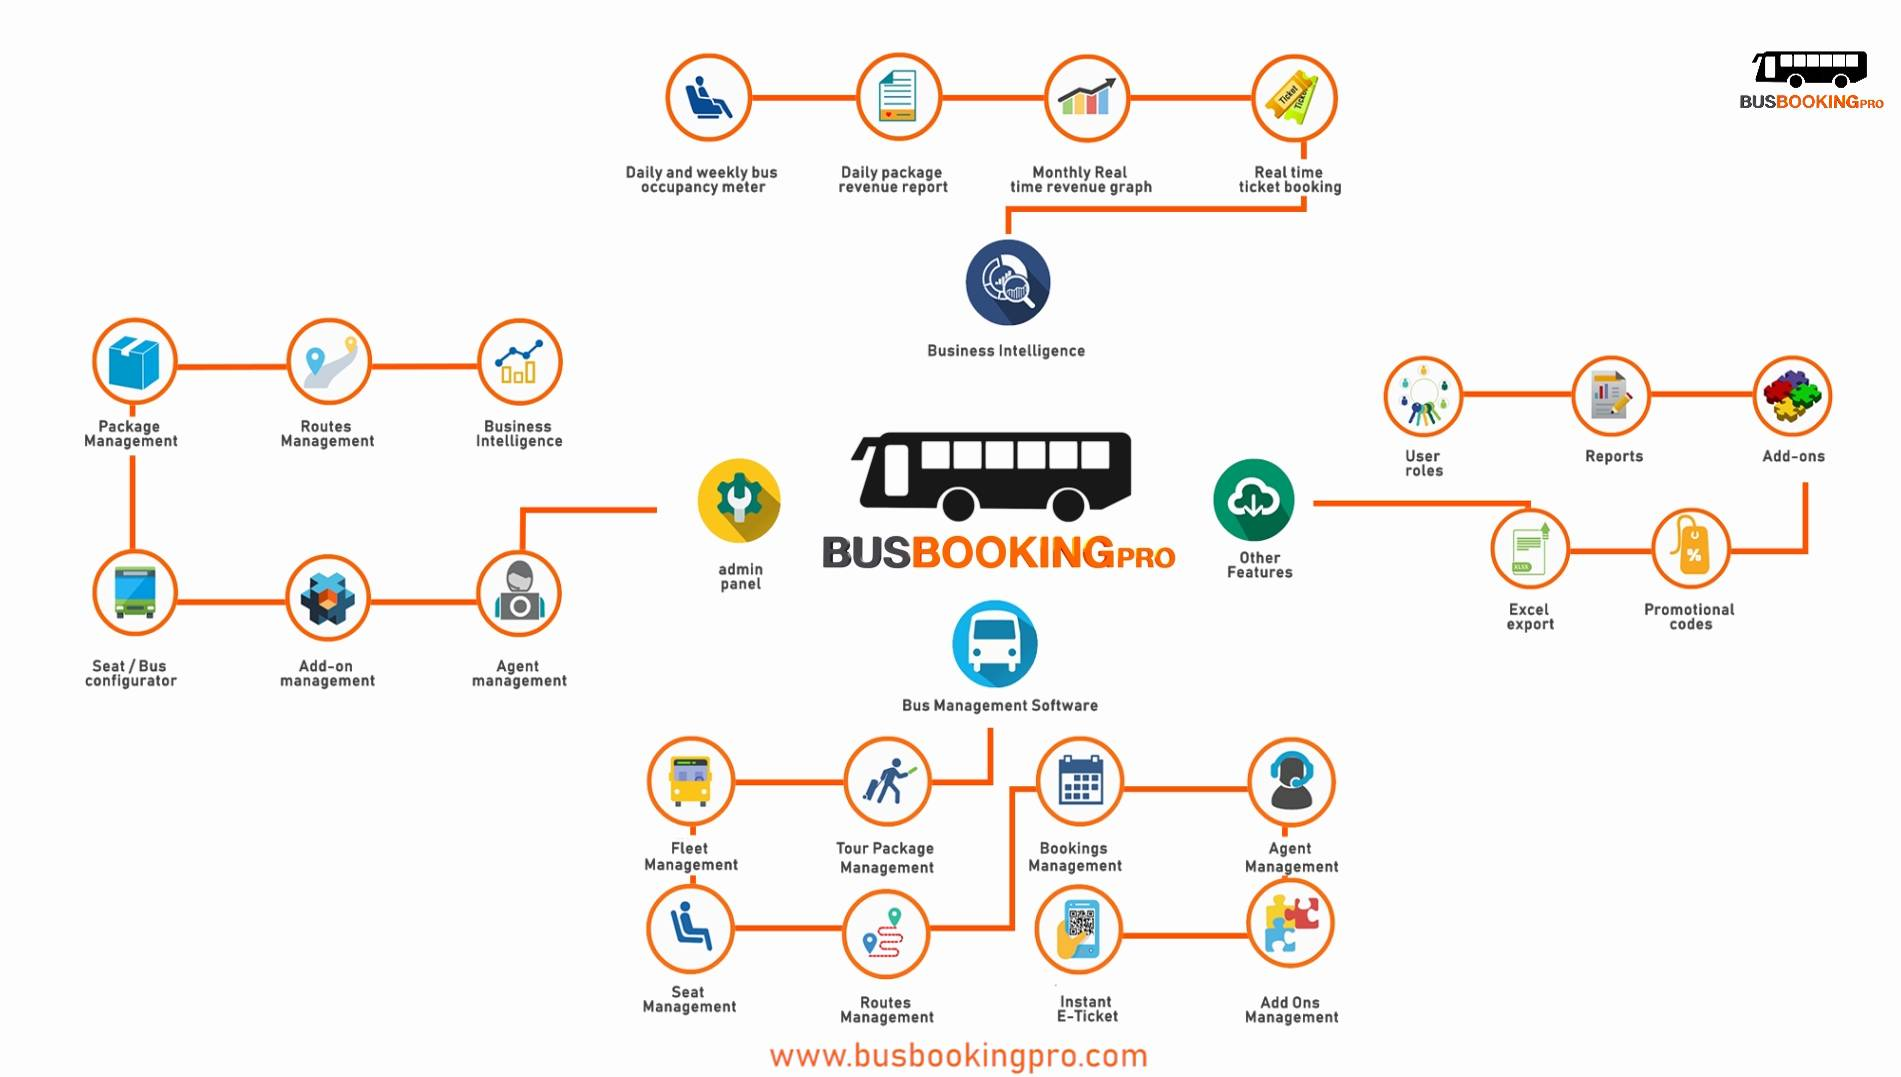 Bus Booking Pro - A booking solution for Bus Fleet owners and Tour package operators